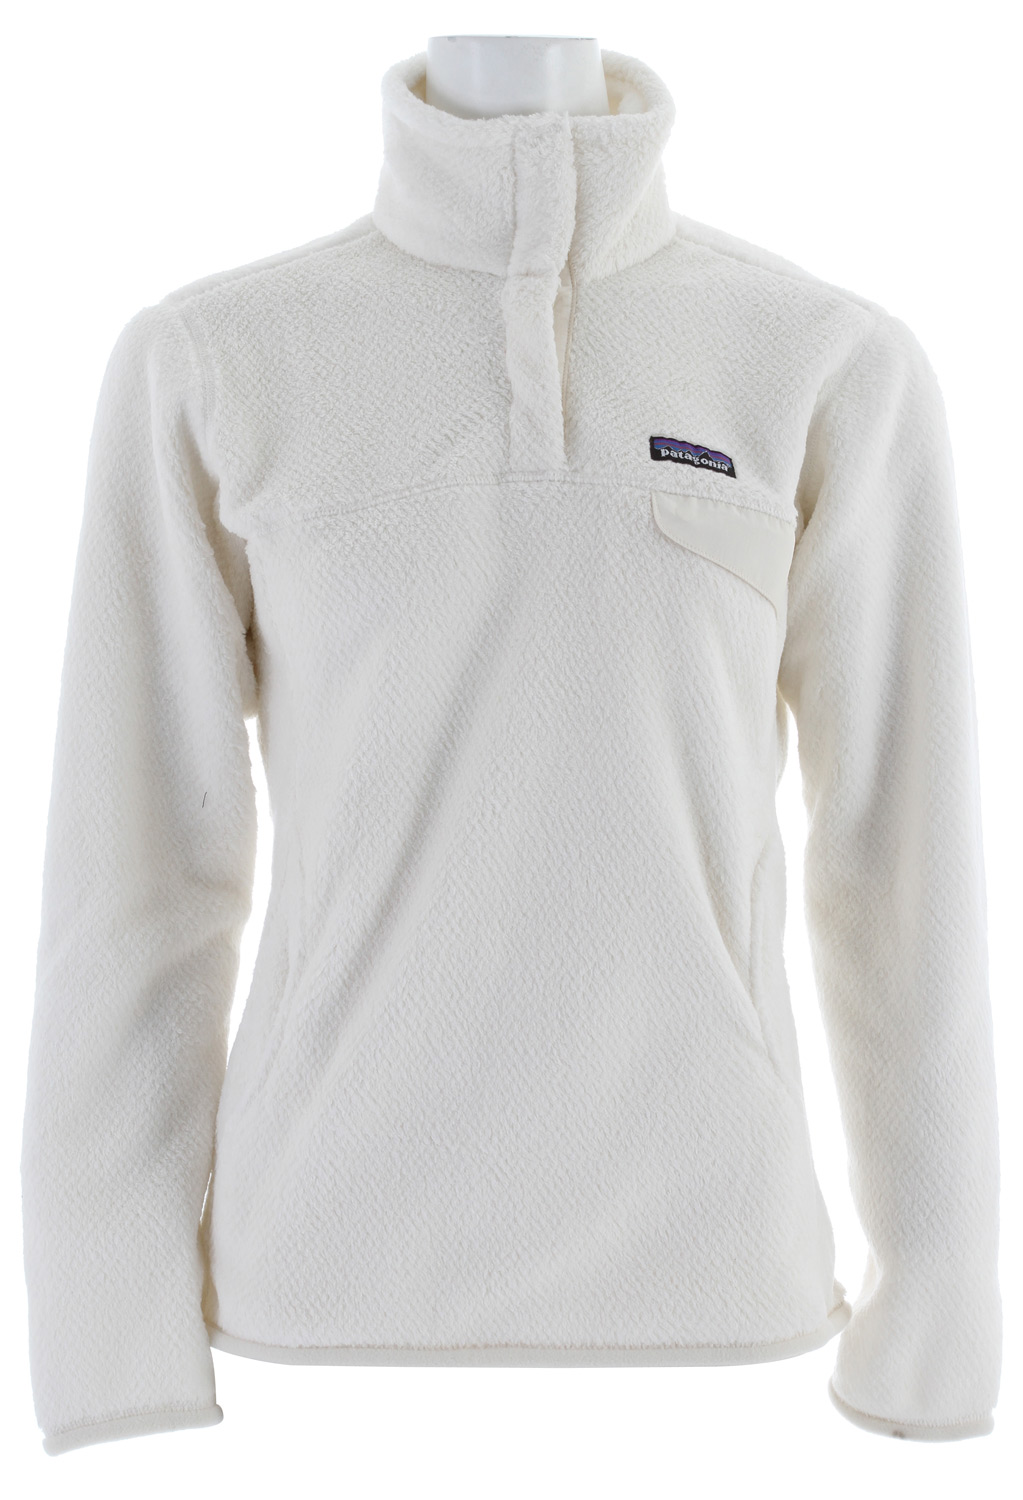 A Polartec Thermal Pro polyester fleece pullover with feminine seaming and a kangaroo handwarmer pocket. fabric: 9.3-oz Polartec Thermal Pro 100% polyester fleeceKey Features of the Patagonia Re-Tool-Snap-T Pullover Pearl/White/Xdye: High-pile fleece has extra-long fibers to retain warmth Stand-up collar; front placket hides the 4-snap closure and is reinforced with Supplex® nylon Kangaroo handwarmer pocket; chest pocket secures with Supplex snap flap Yoke and princess seams add contour and shape Hip length - $109.95